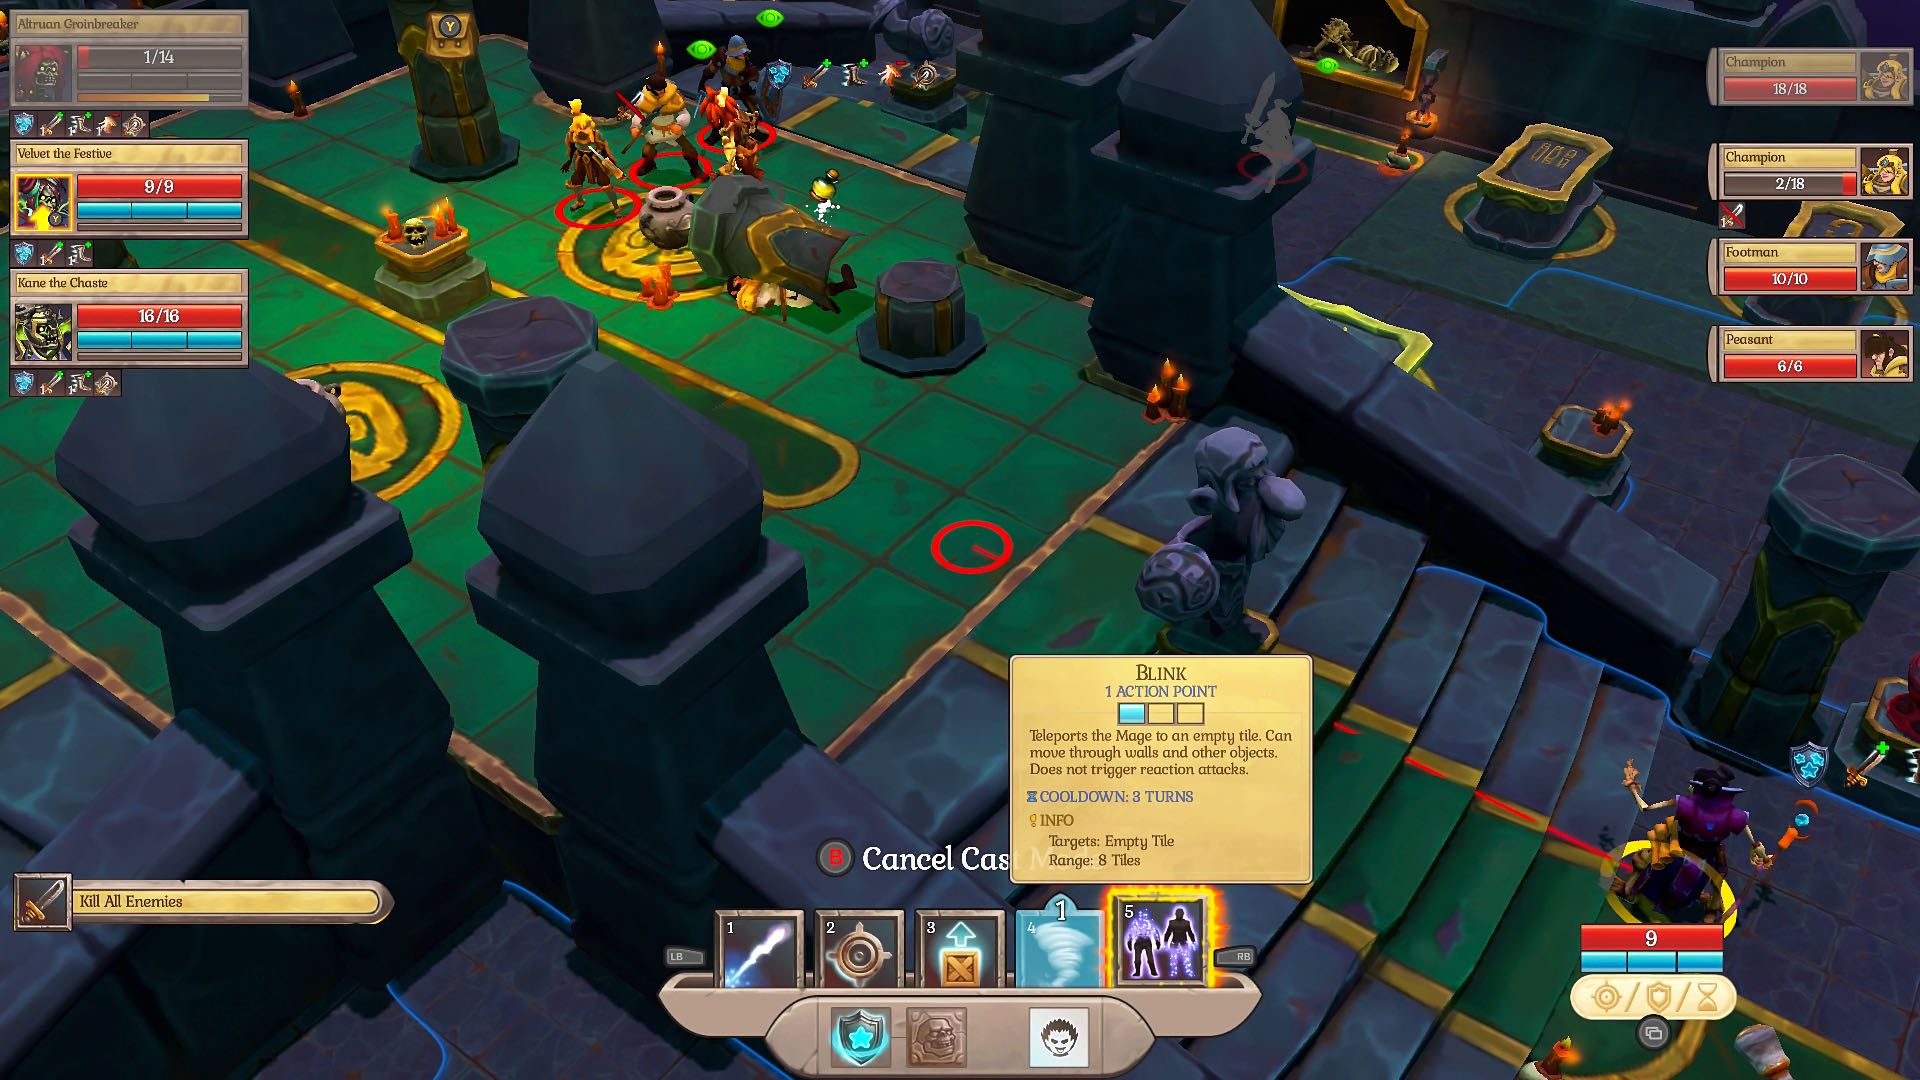 A colourful in-battle screenshot from Fort Triumph, showing action and command options for your characters.